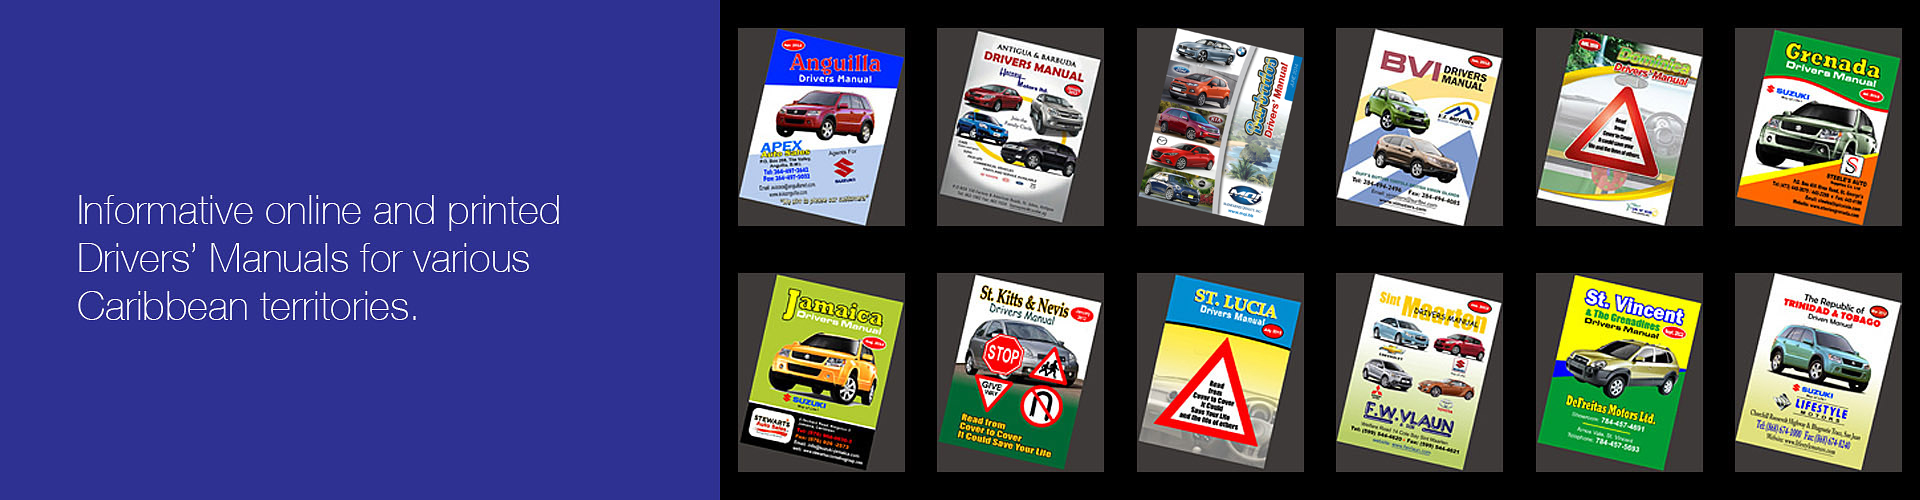 drivers manual, caribbean, territories, road, safety, information